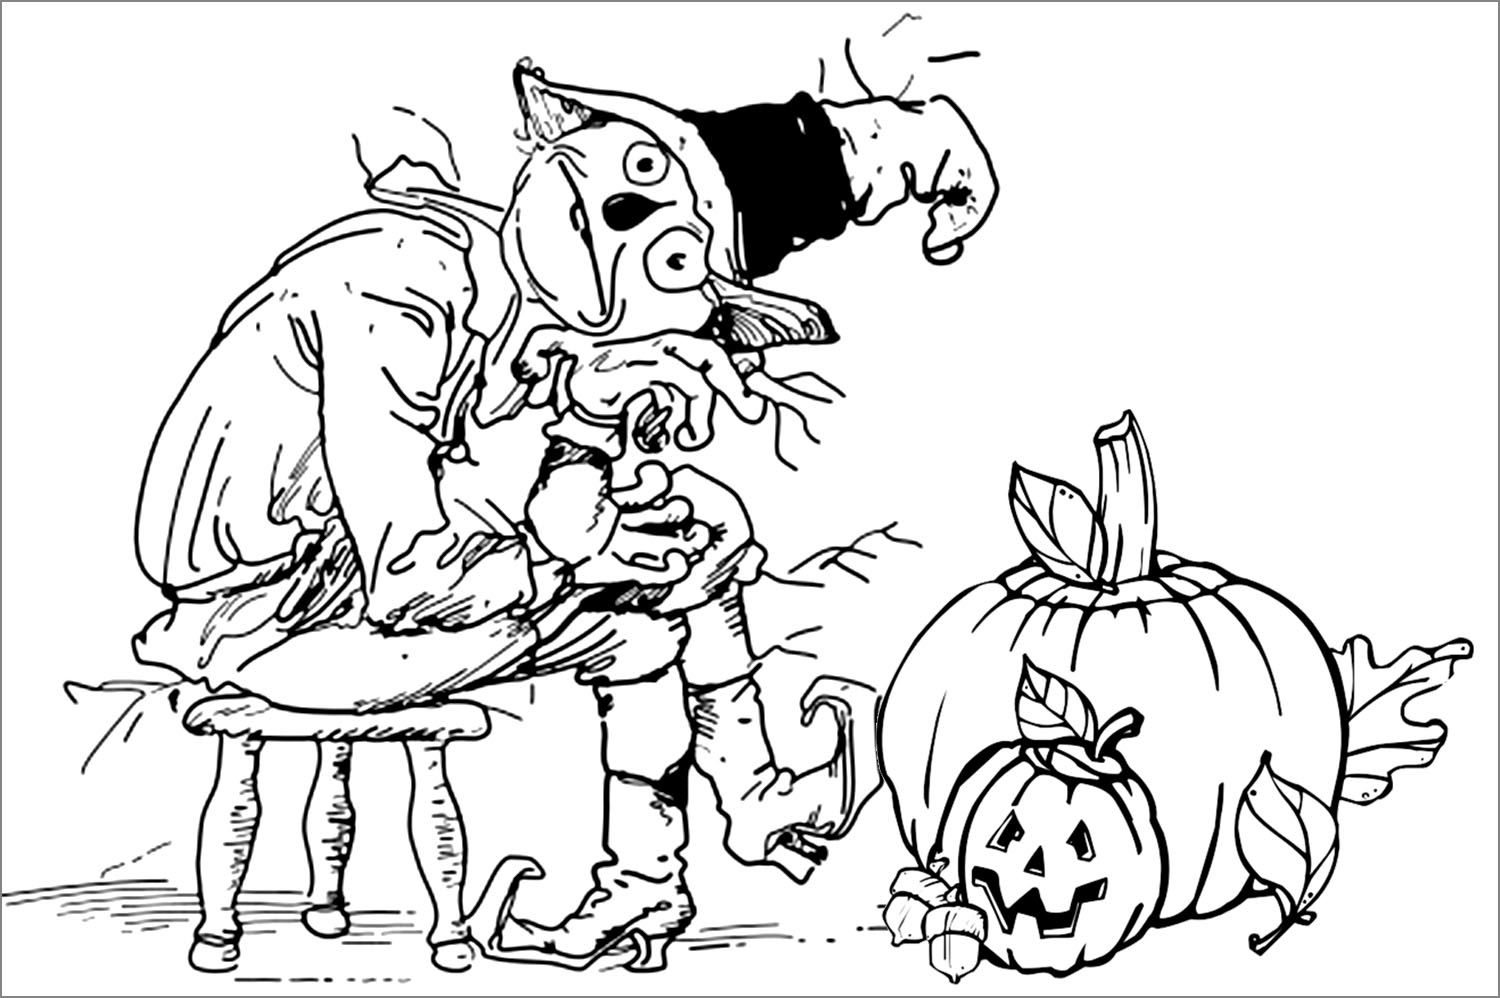 Free coloring pages for halloween and fall - Halloween Coloring Pictures To Print For Free Coloring Pages For